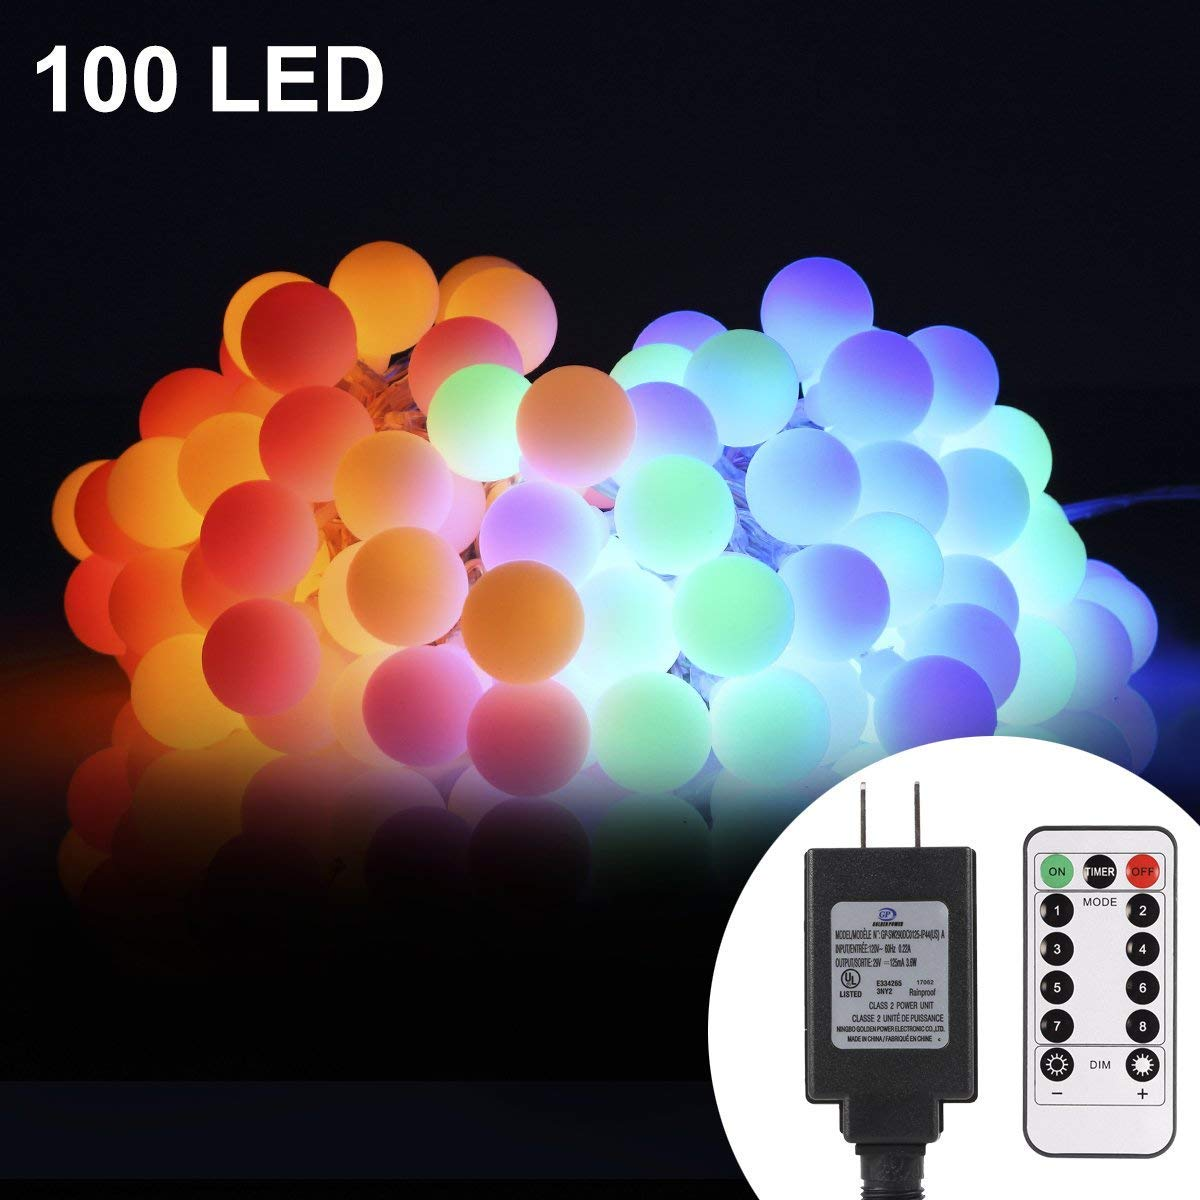 33ft 100 LED Globe String Lights with Remote & Timer (Multi Color) $13.98 @ Amazon